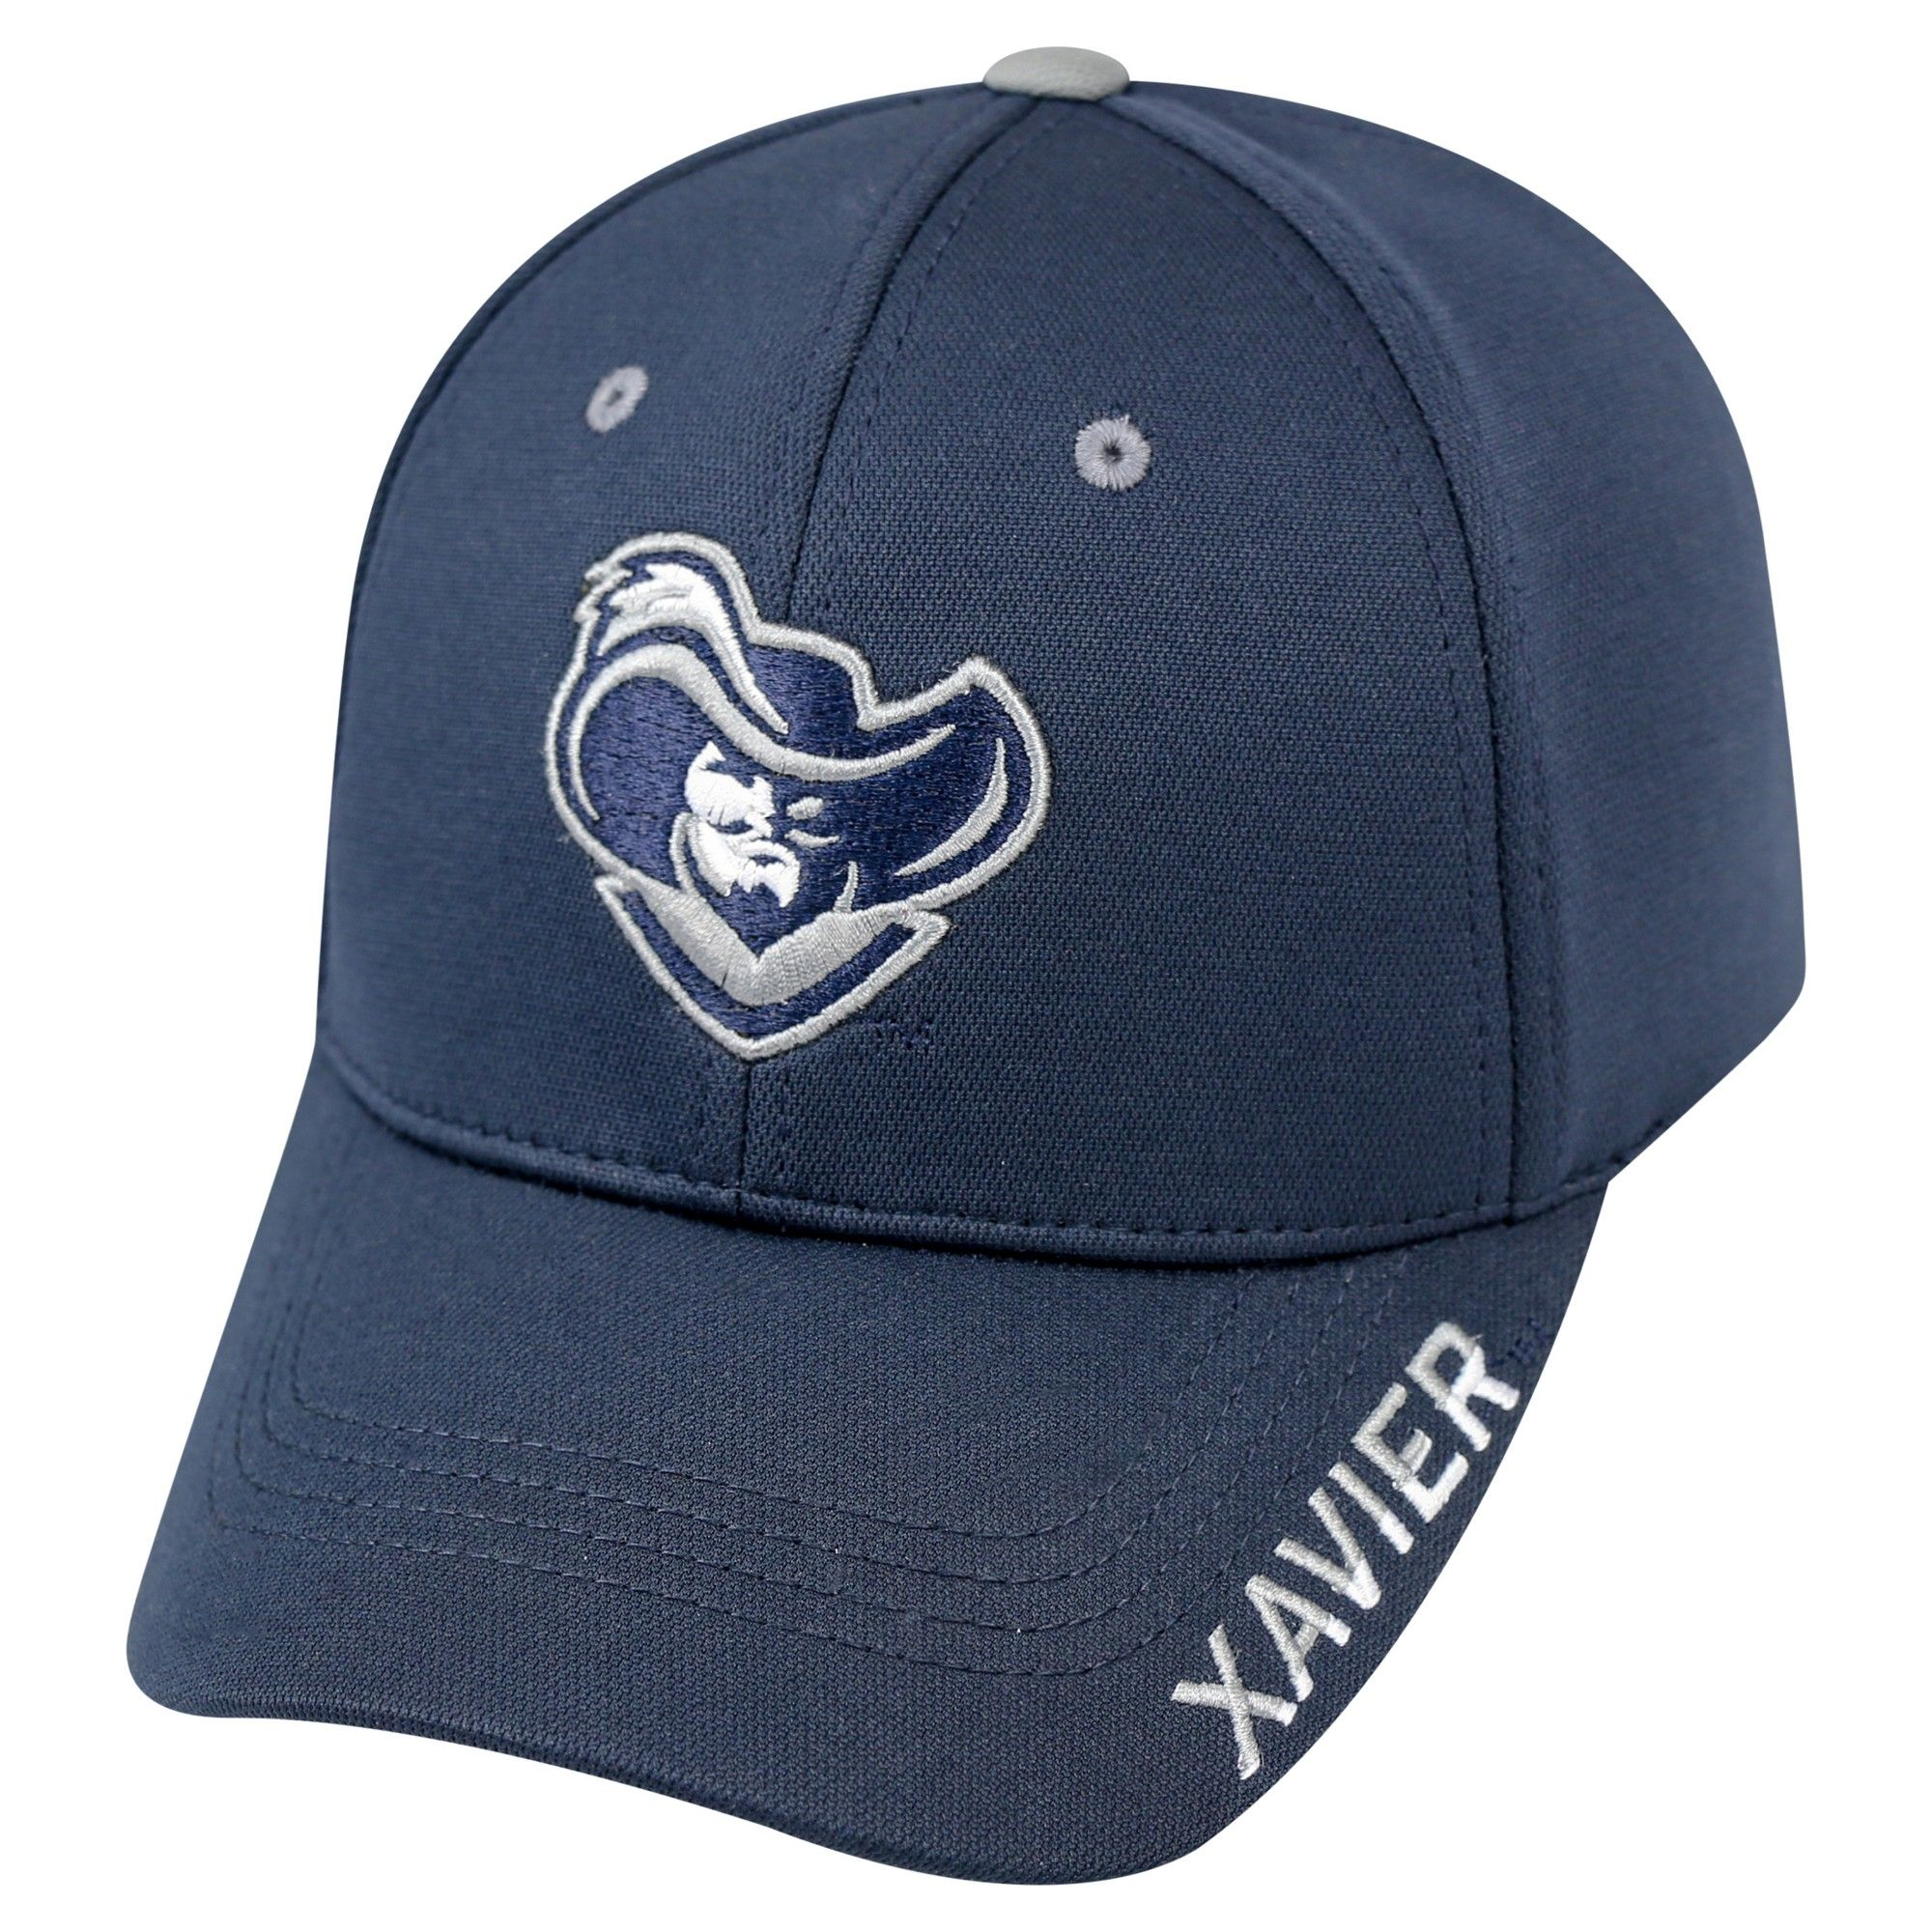 size 40 603a3 e59ca ... discount code for ncaa baseball hats xavier musketeers black mens 546c7  429f5